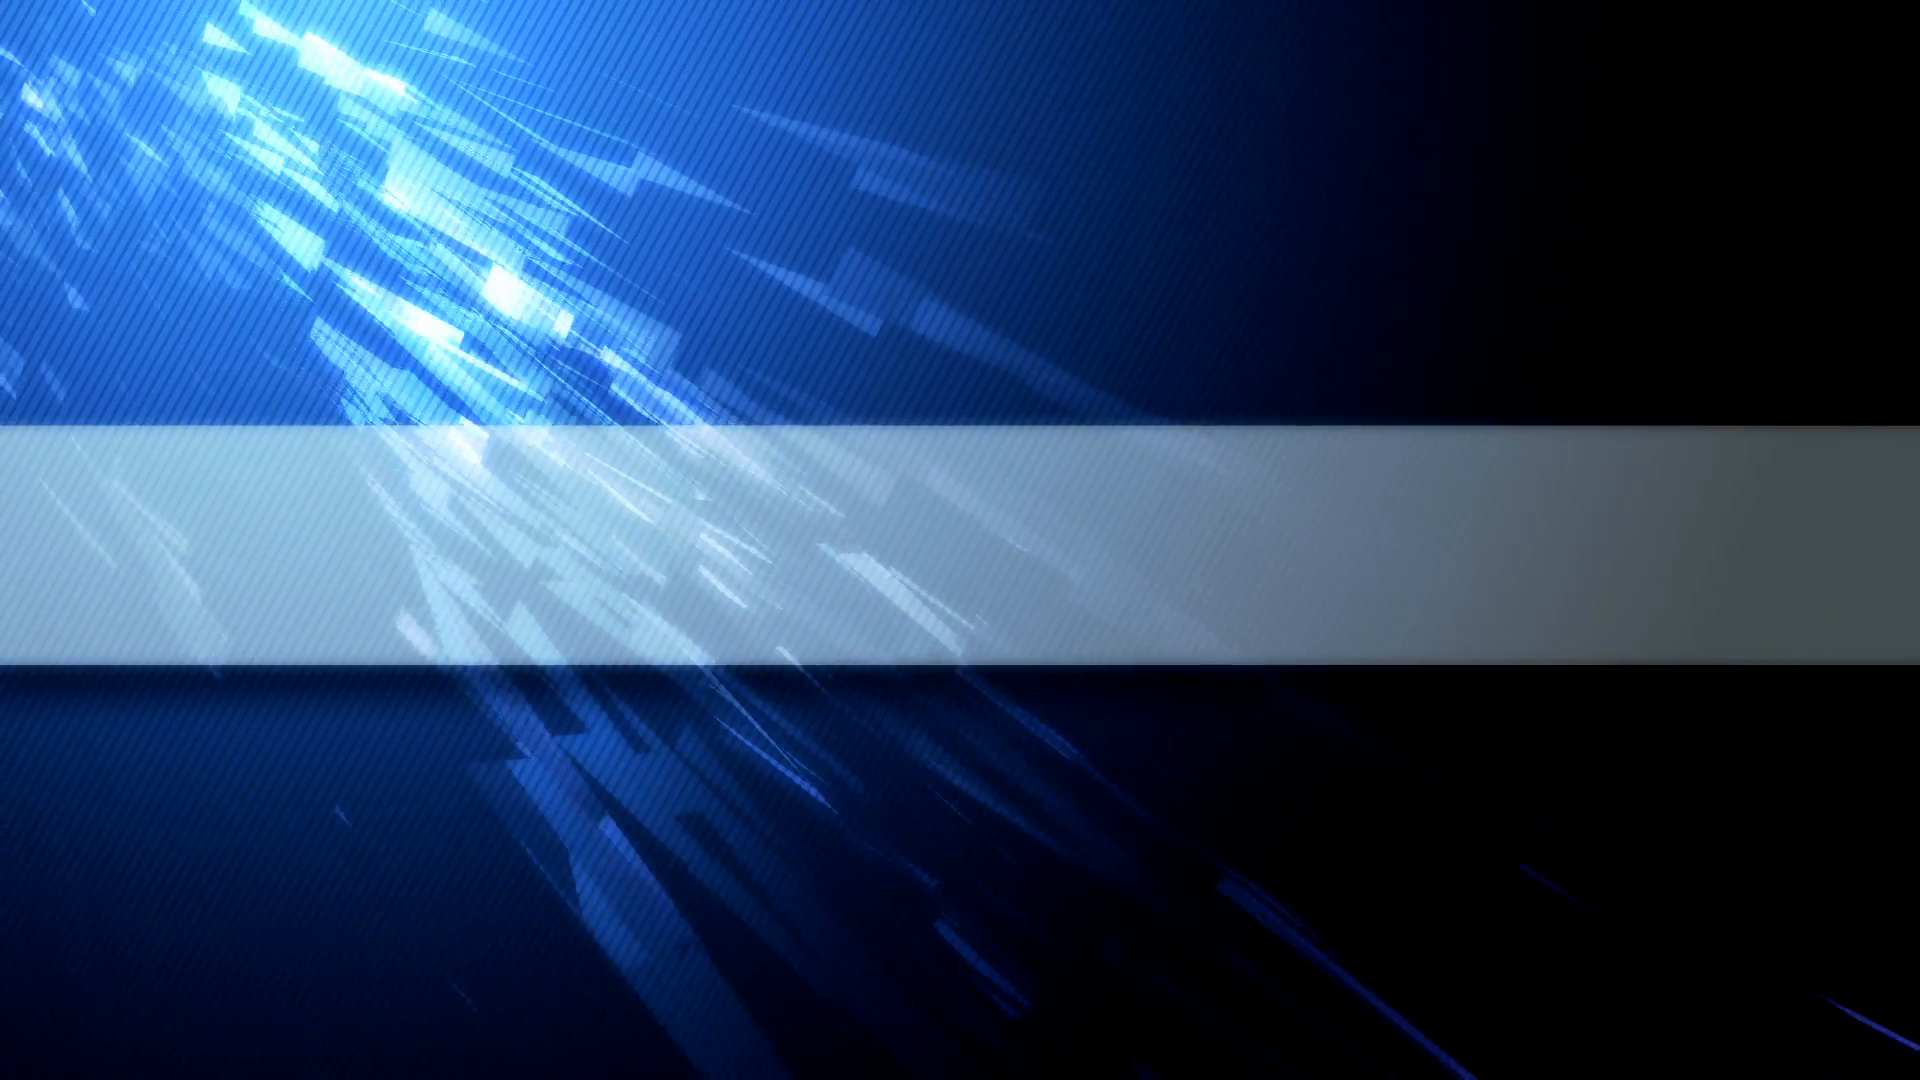 Banner Template No Text Best Of Blue Abstract Video Background with Copy Space for Your